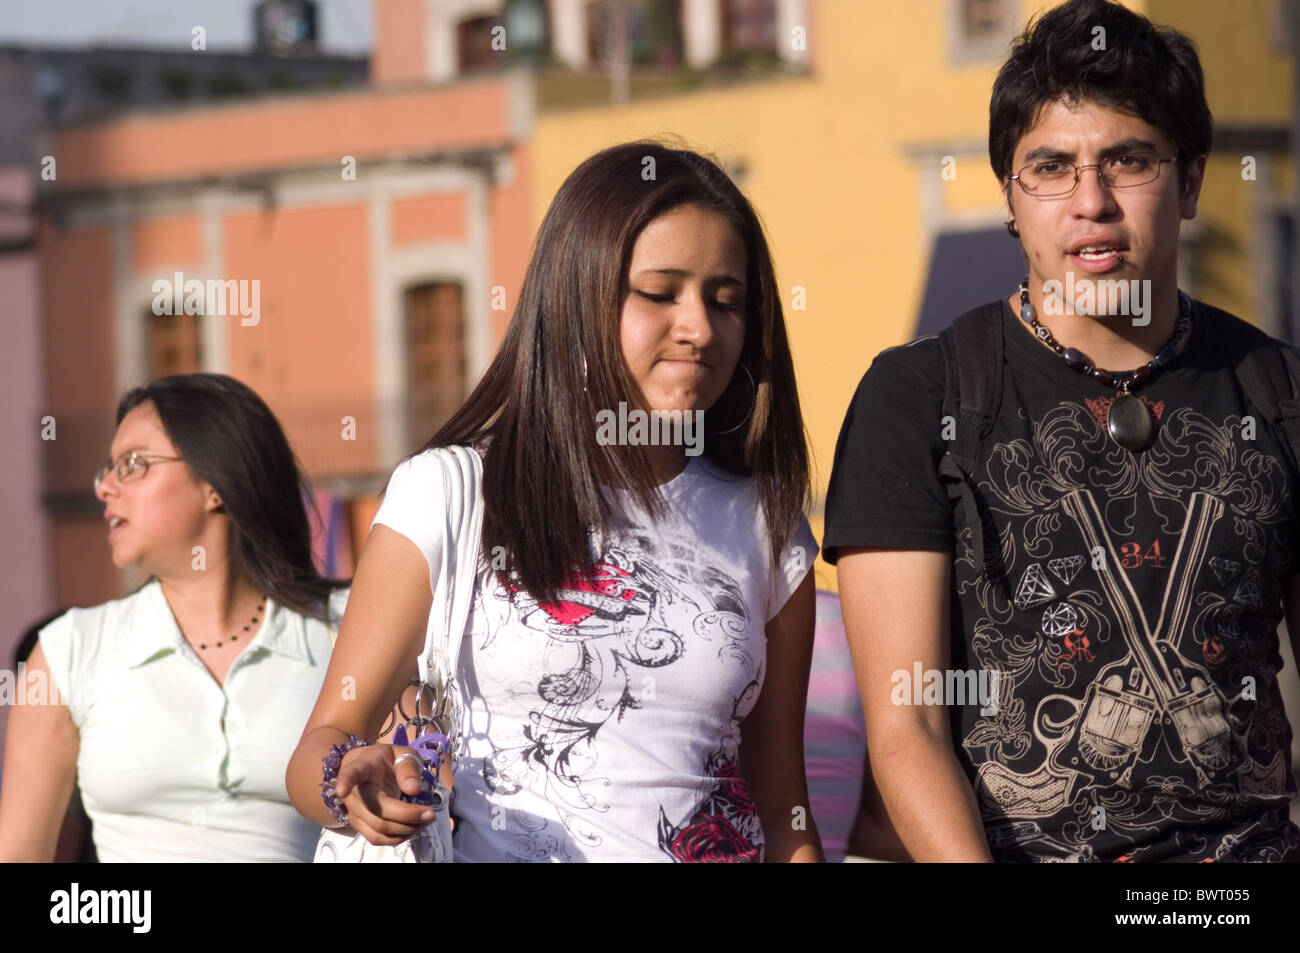 Couple of Mexican adolescents walking in the streets of Mexico city - Stock Image